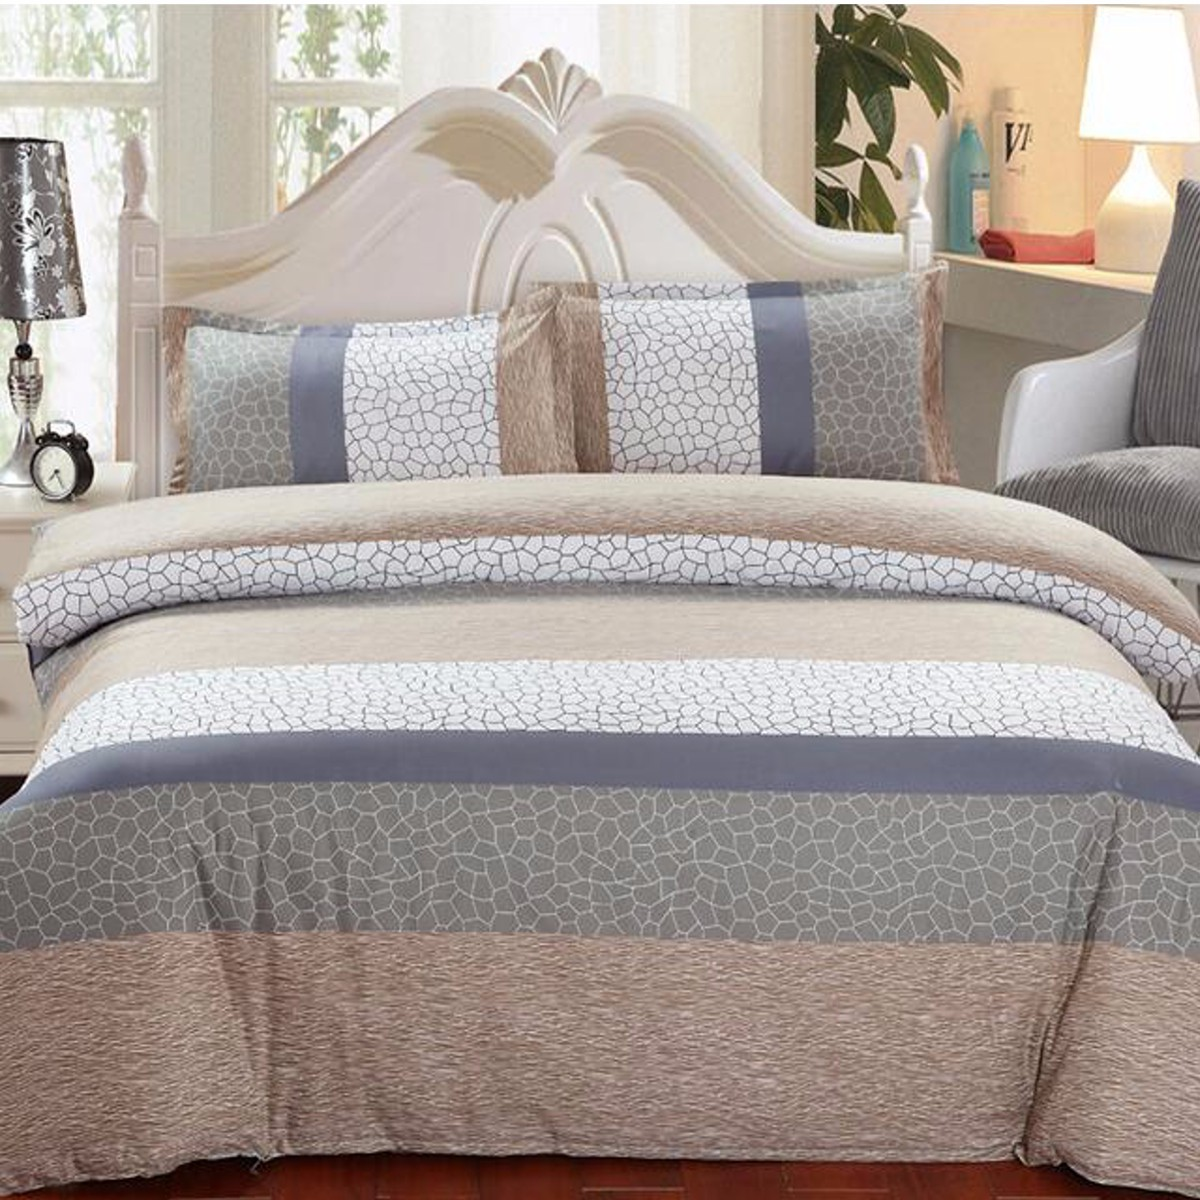 1.5m/1.8m 4 pcs Cotton Bedding Set Pillowcase Quilt Duvet Cover Flat Sheet Elegent Noble Bedding